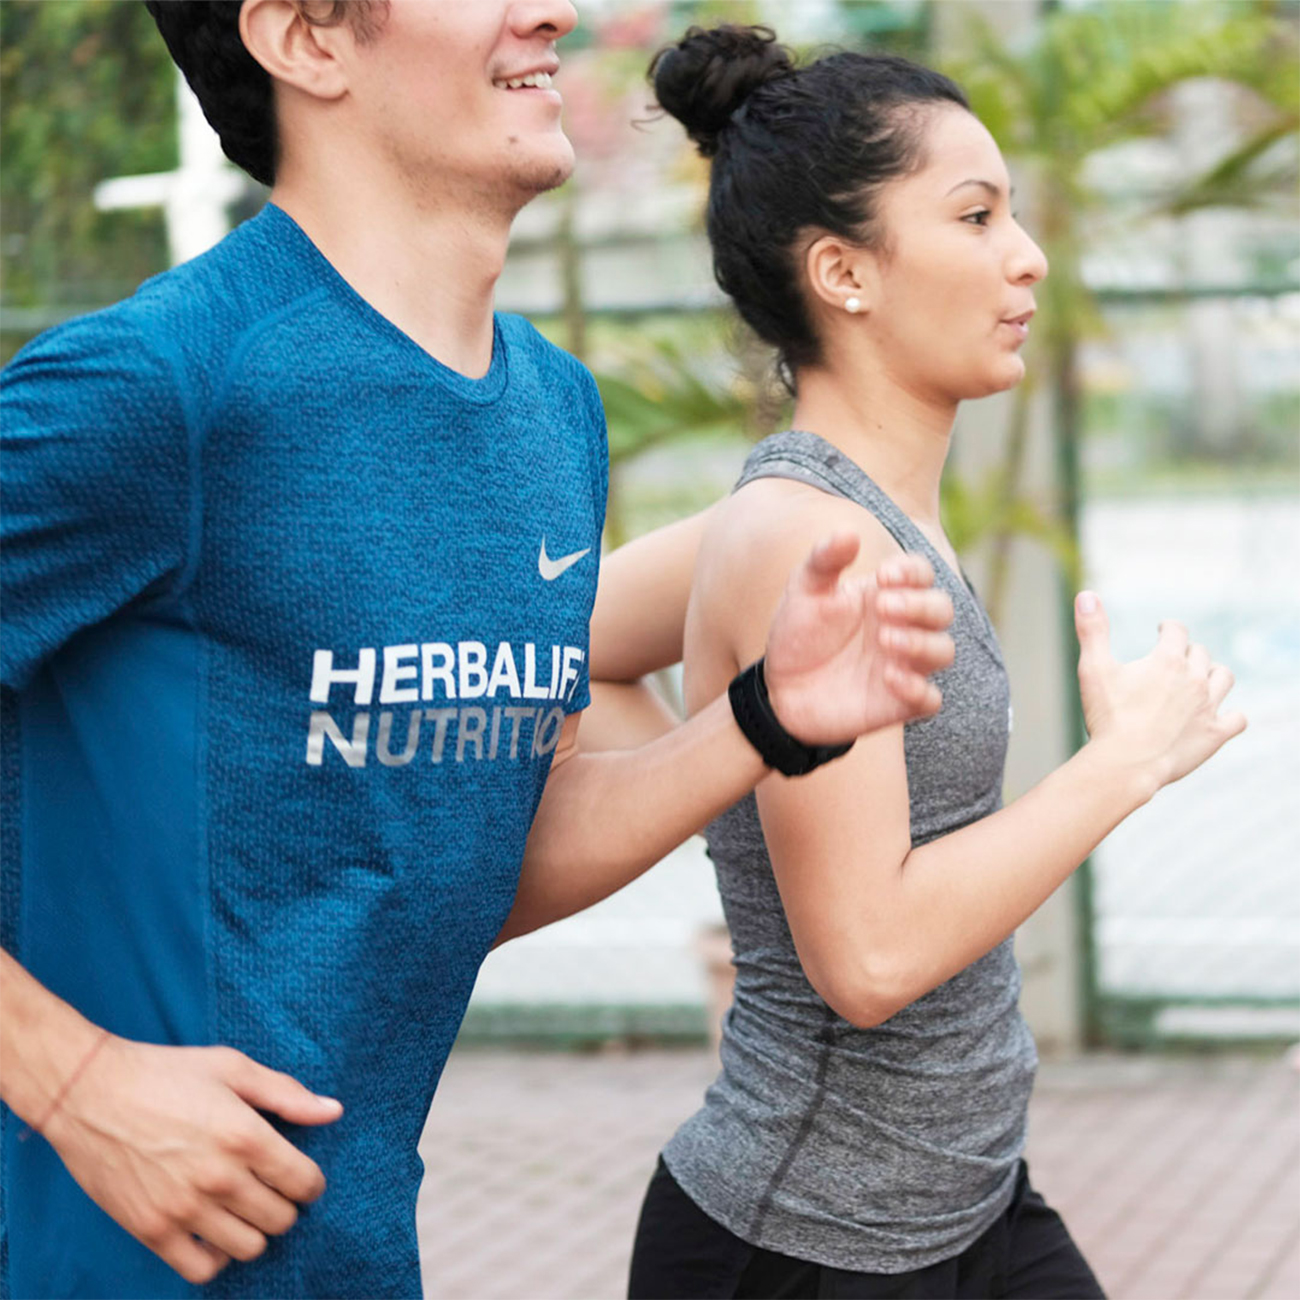 herbalife nutrition coach and his customer jogging together outdoors